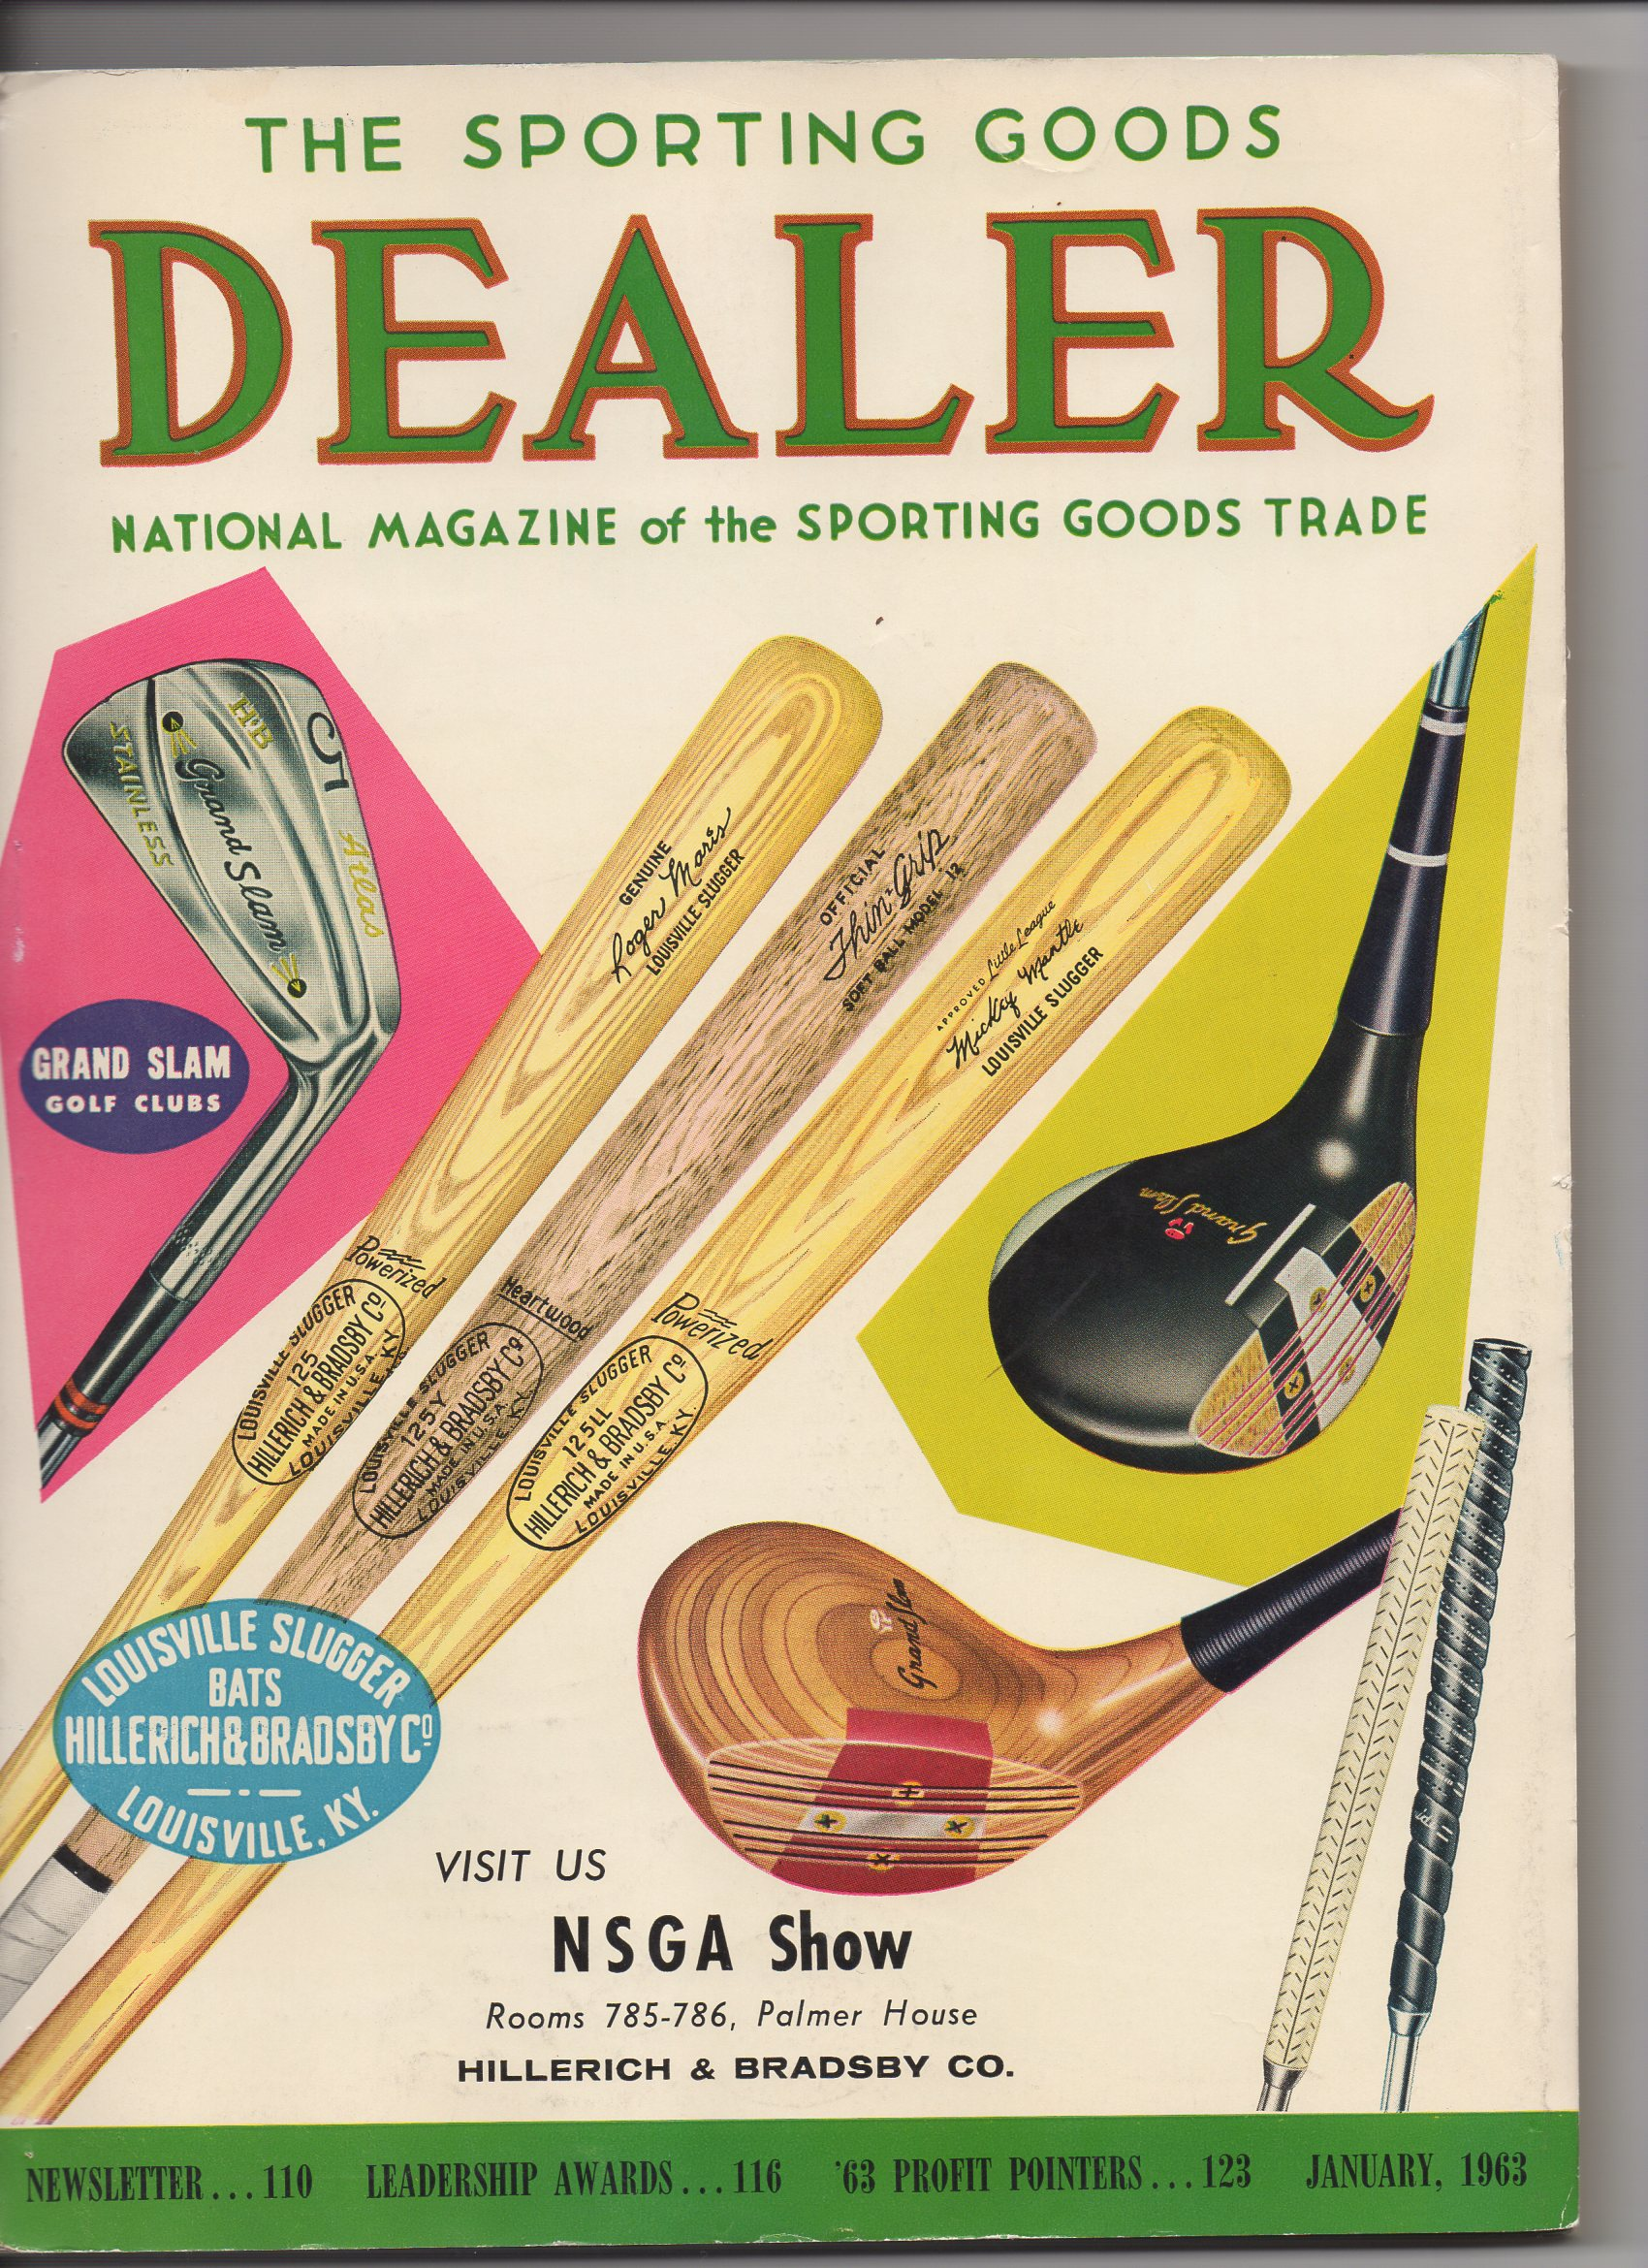 the sporting goods dealer, 01/1963